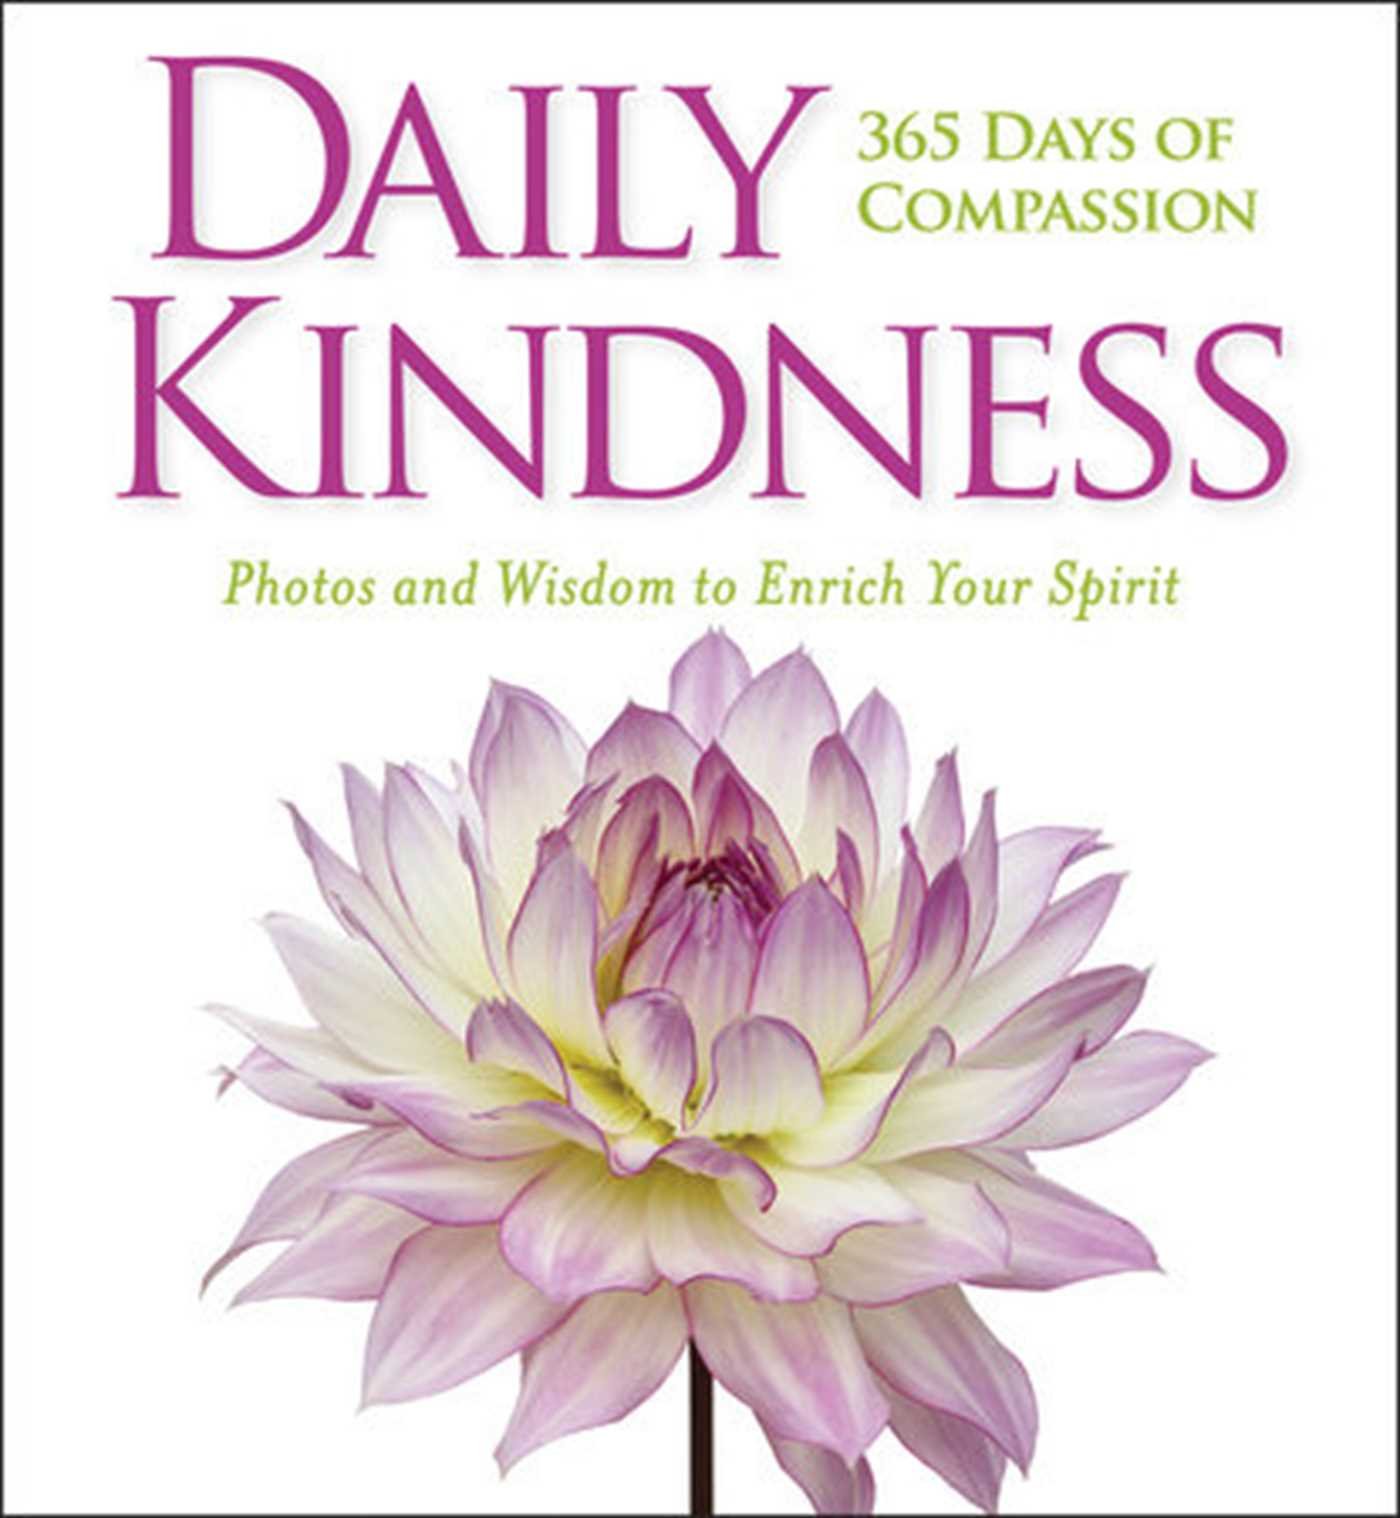 Daily kindness 365 days of compassion 9781426218446 hr